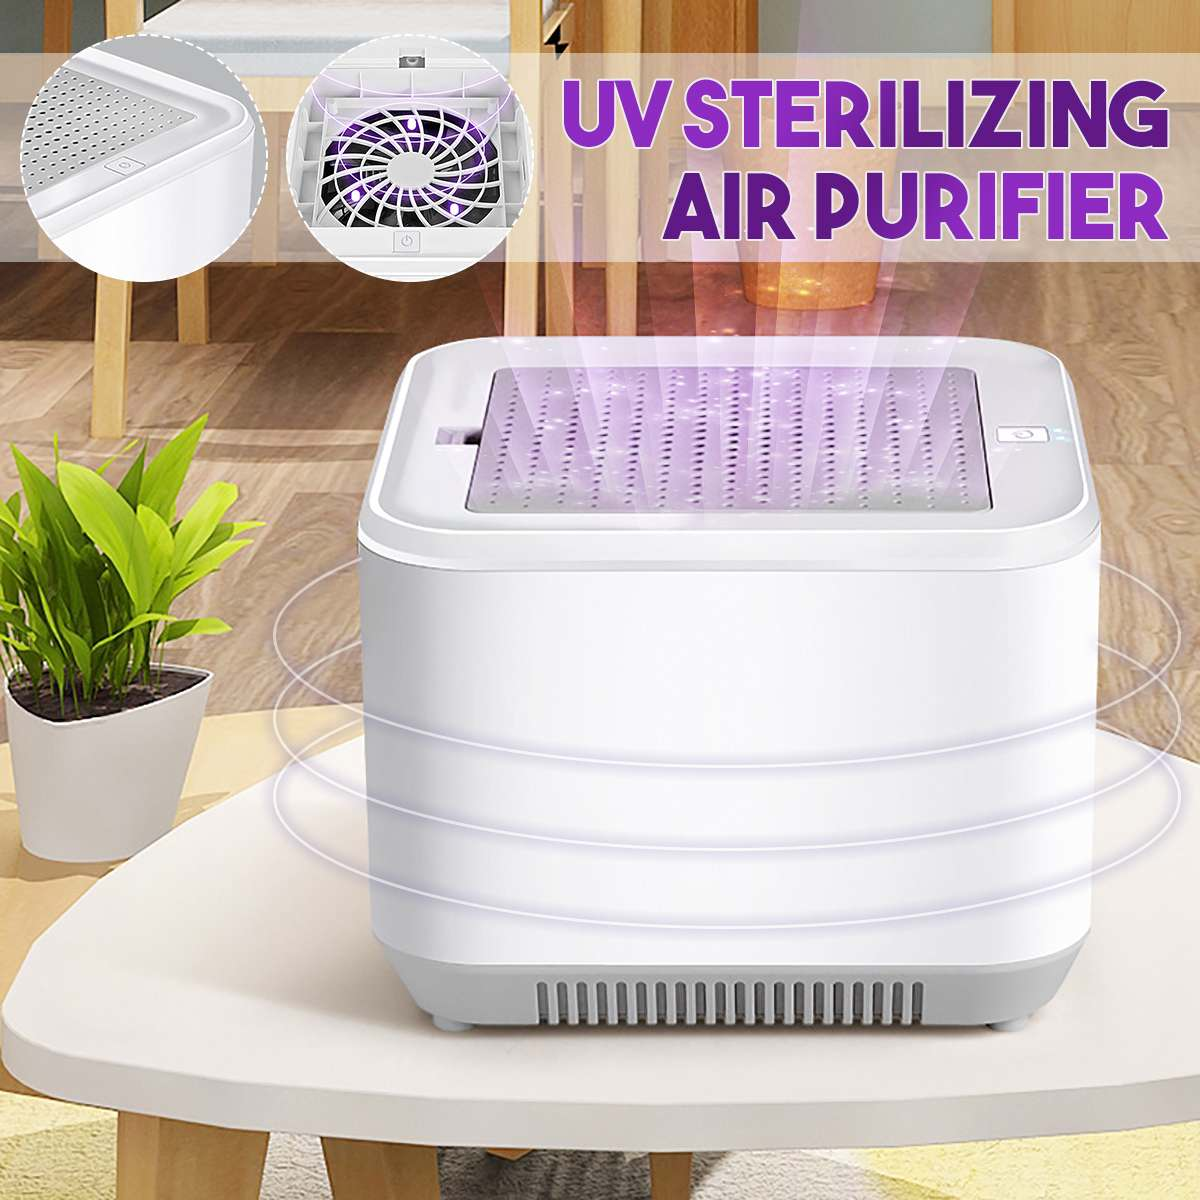 Air Purifier Odor Cleaner UV Lamp Sterilizer Box Home HEPA Filter Formaldehyde with Germicidal Light